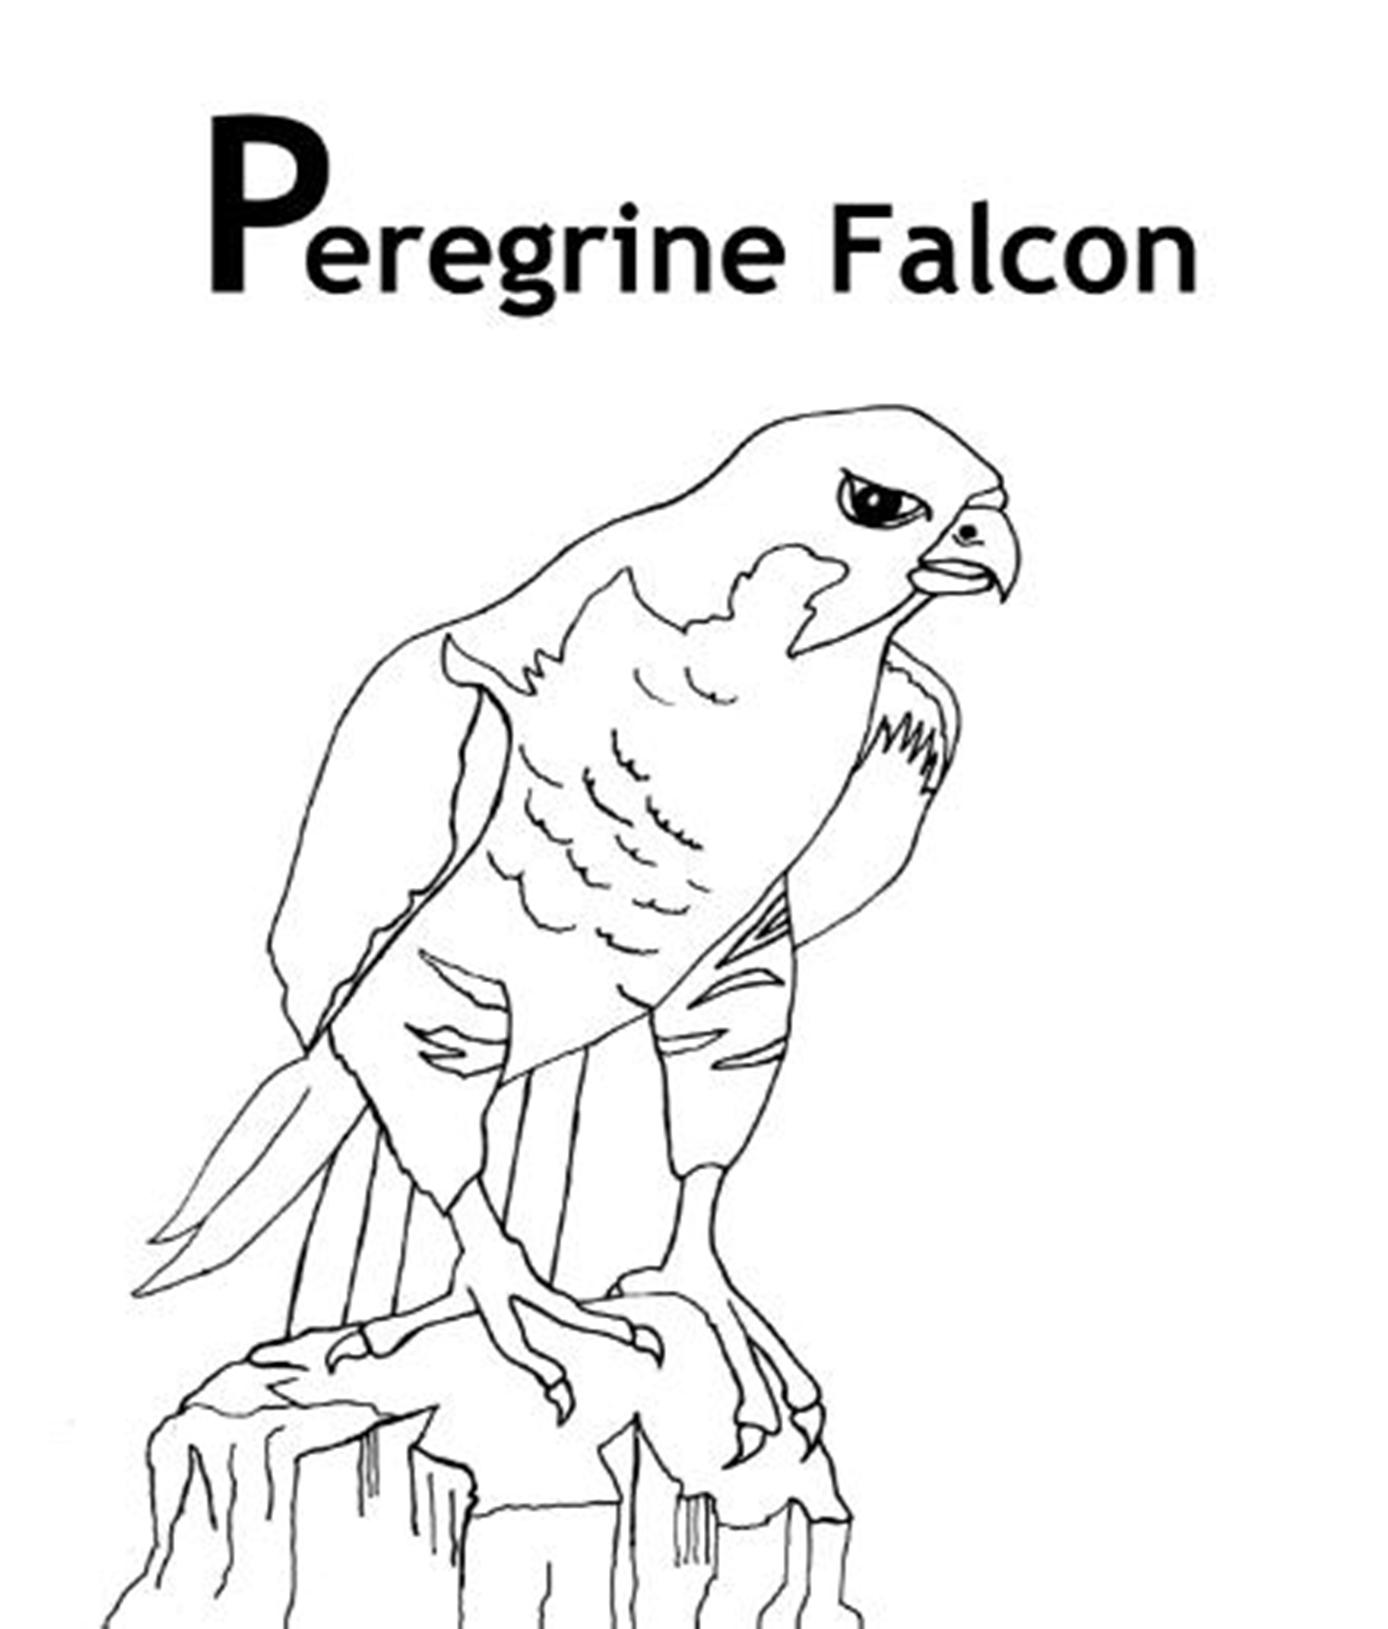 peregrine falcon coloring pages for adults